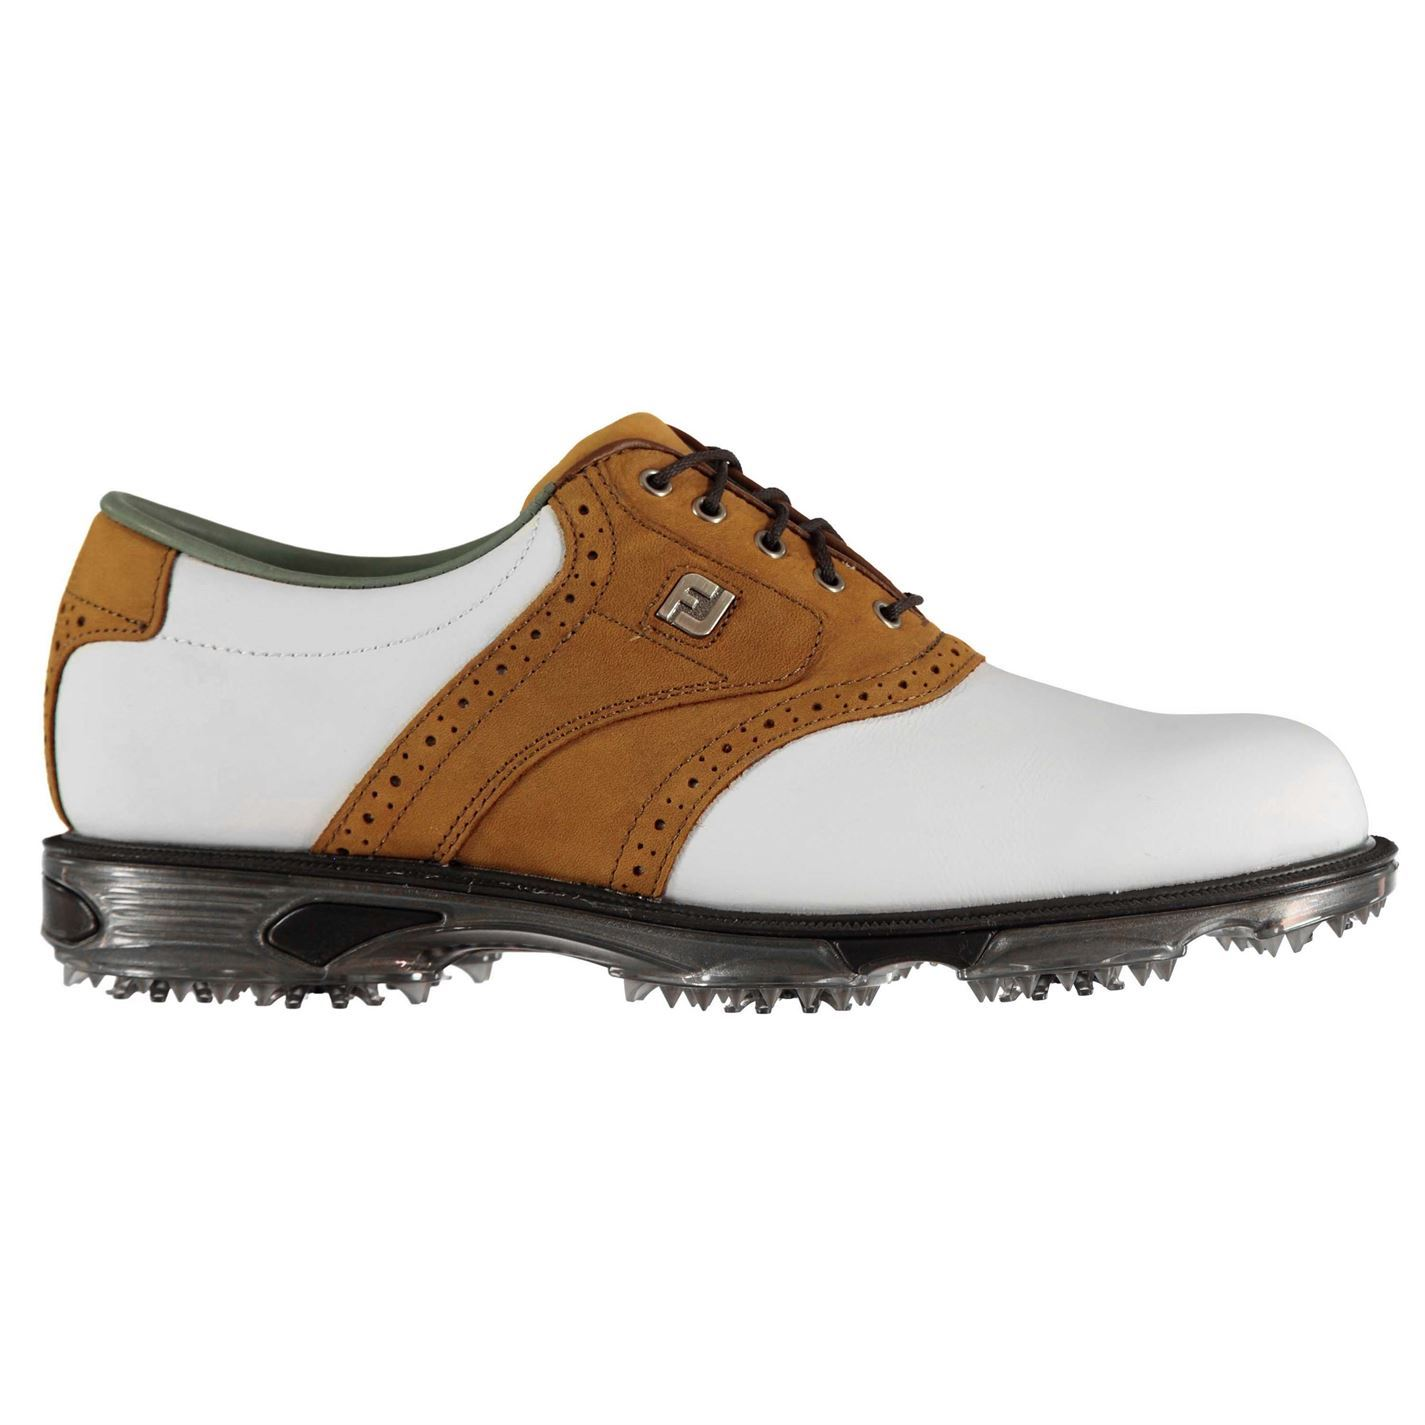 Footjoy-DryJoys-Tour-Golf-Shoes-Mens-Spikes-Footwear thumbnail 14